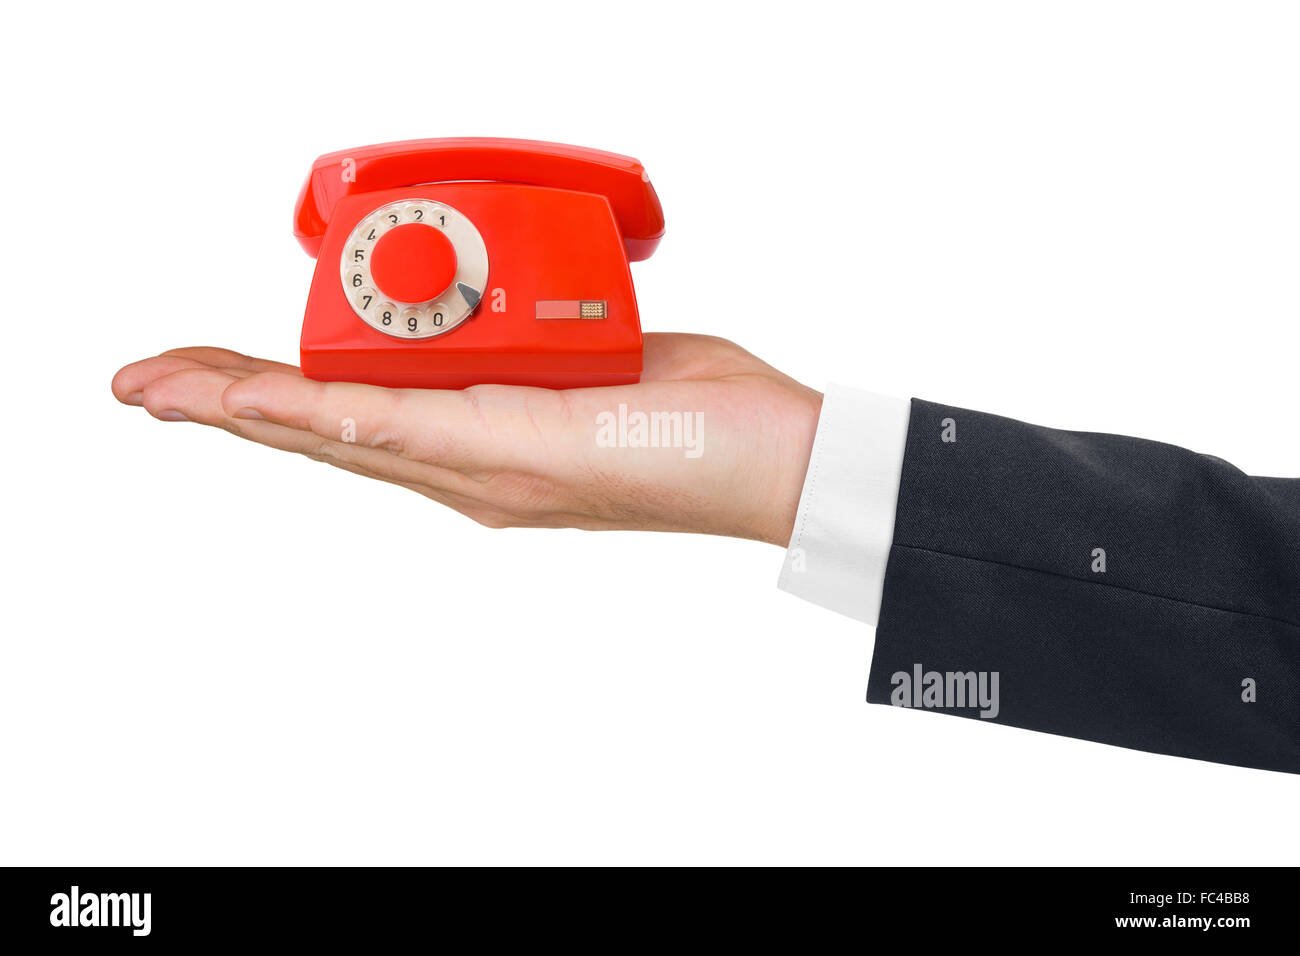 Telephone on hand - Stock Image